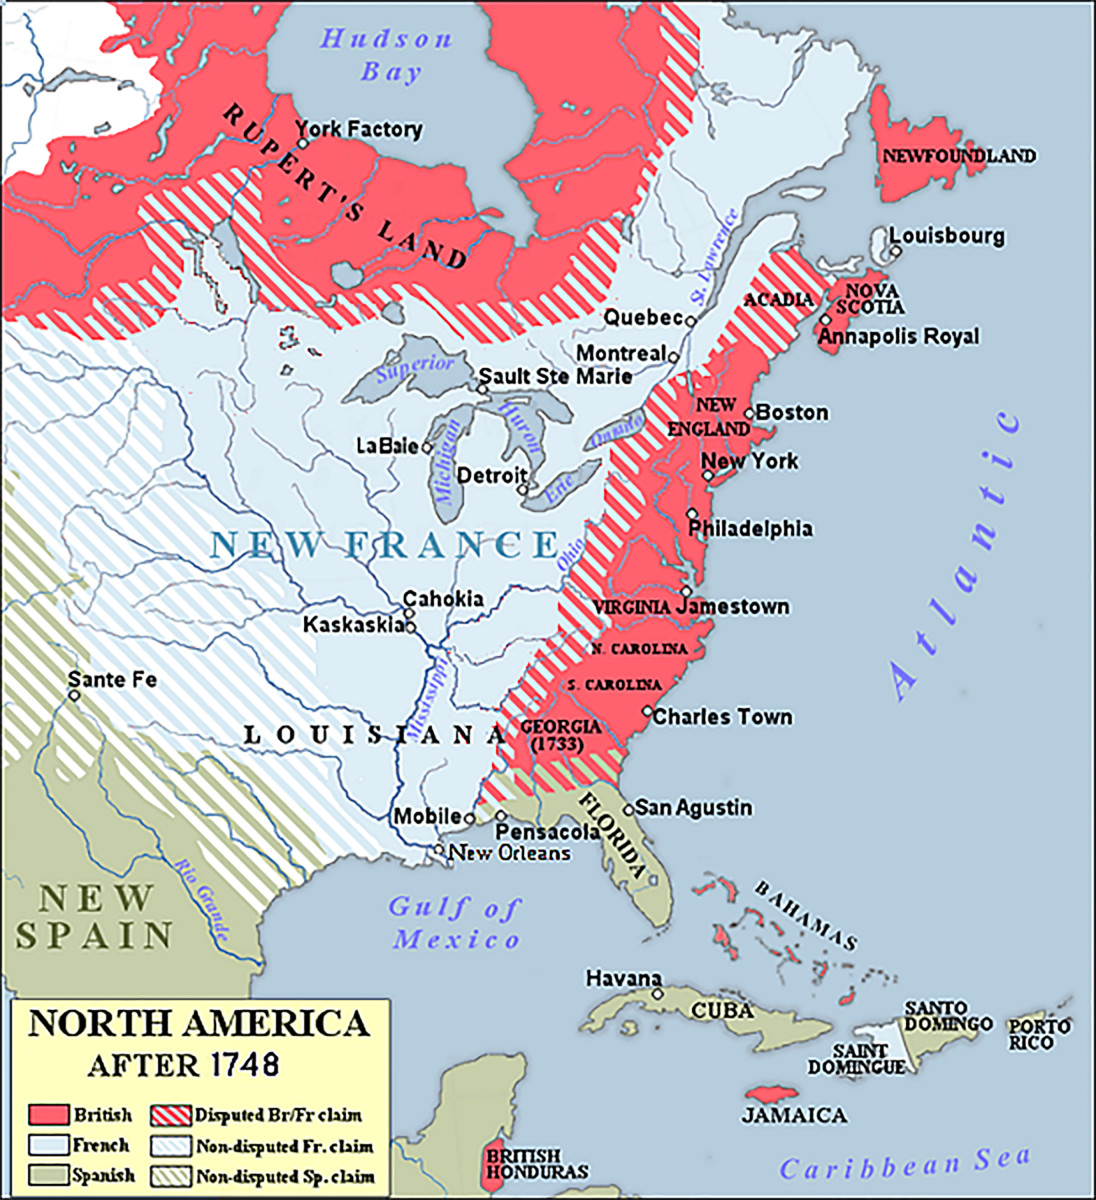 Map of North America after 1748.